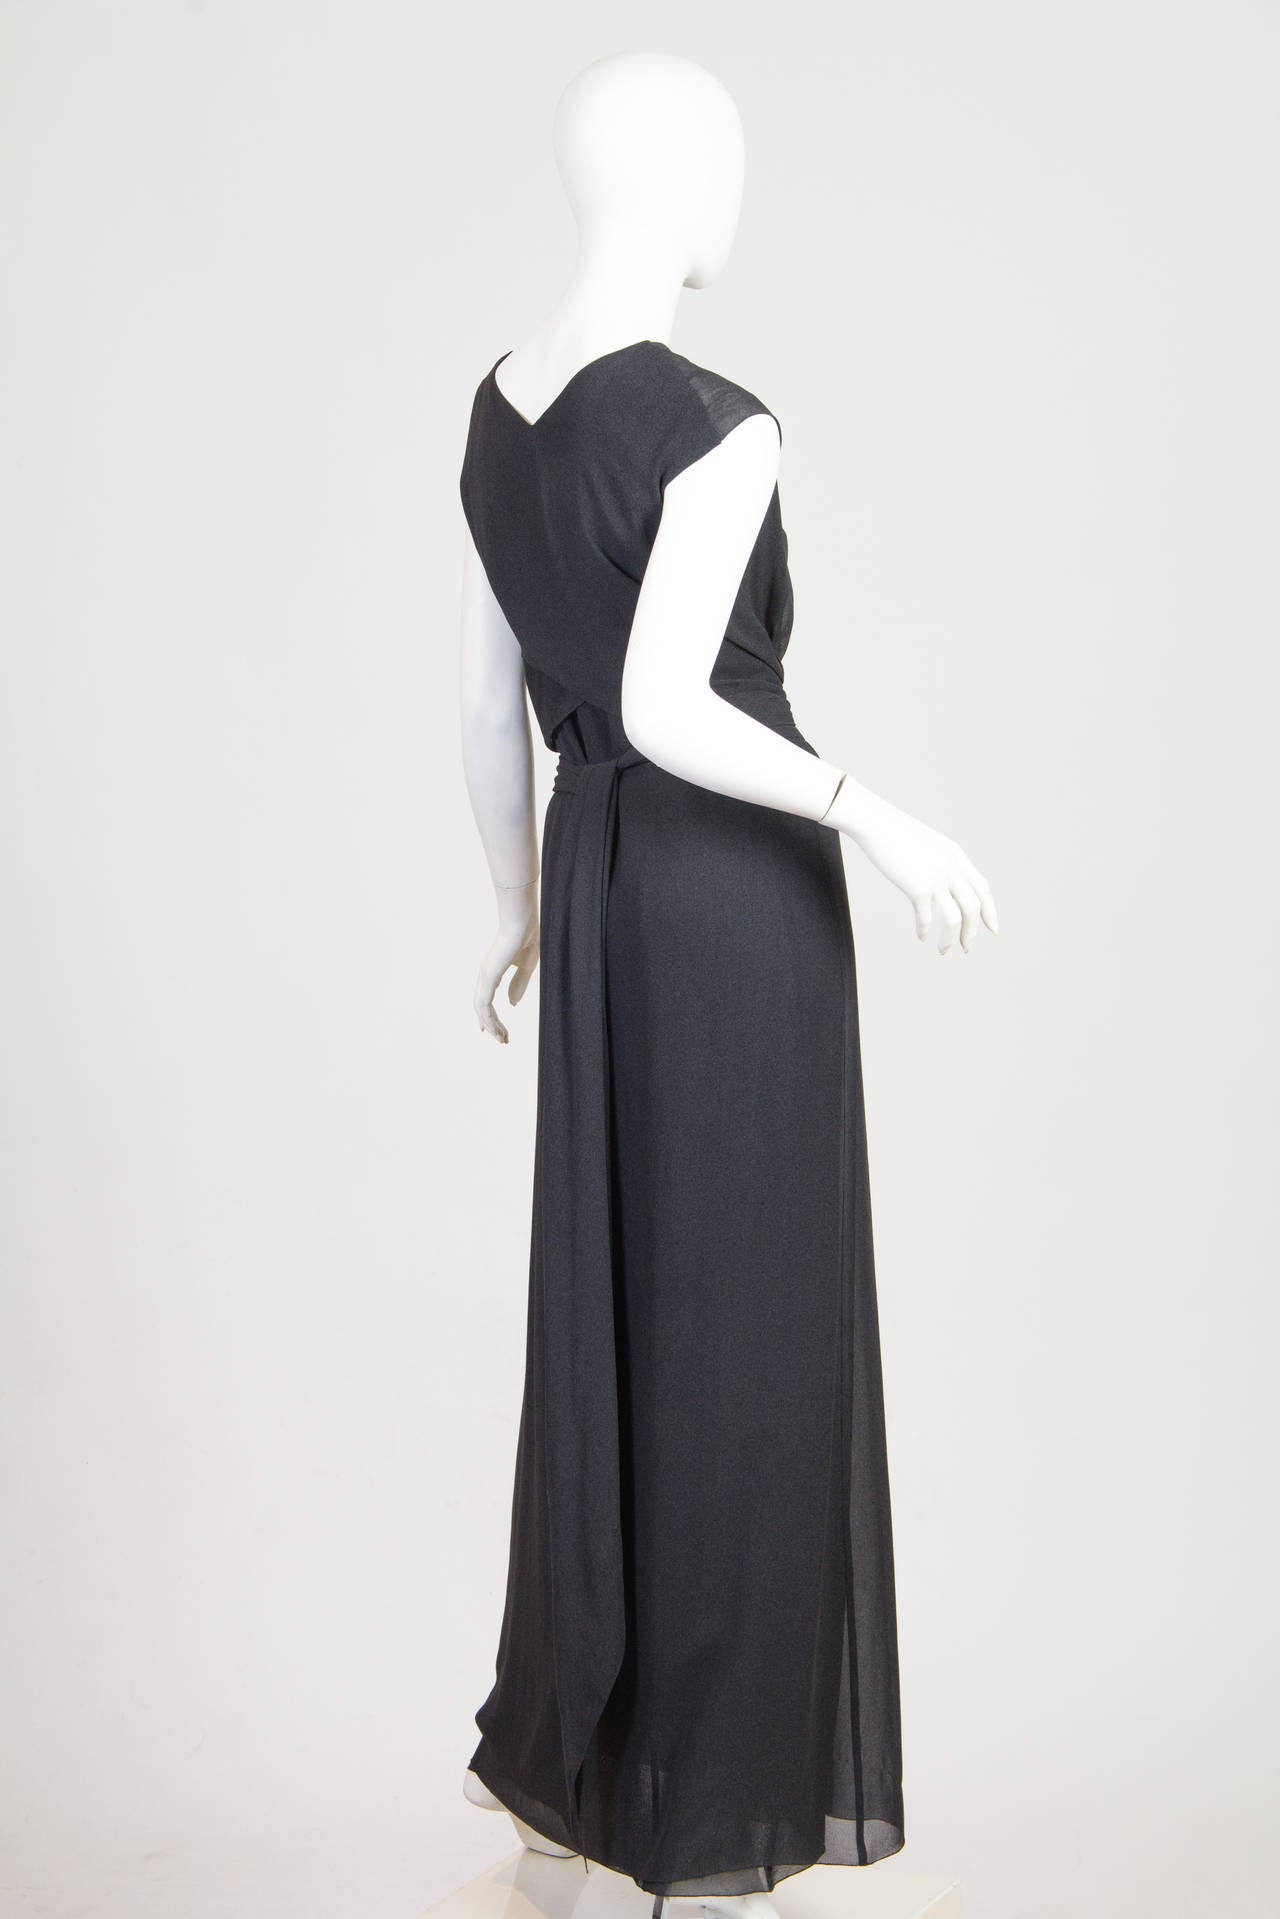 Slate Grey Crepe Dress from Chanel 2